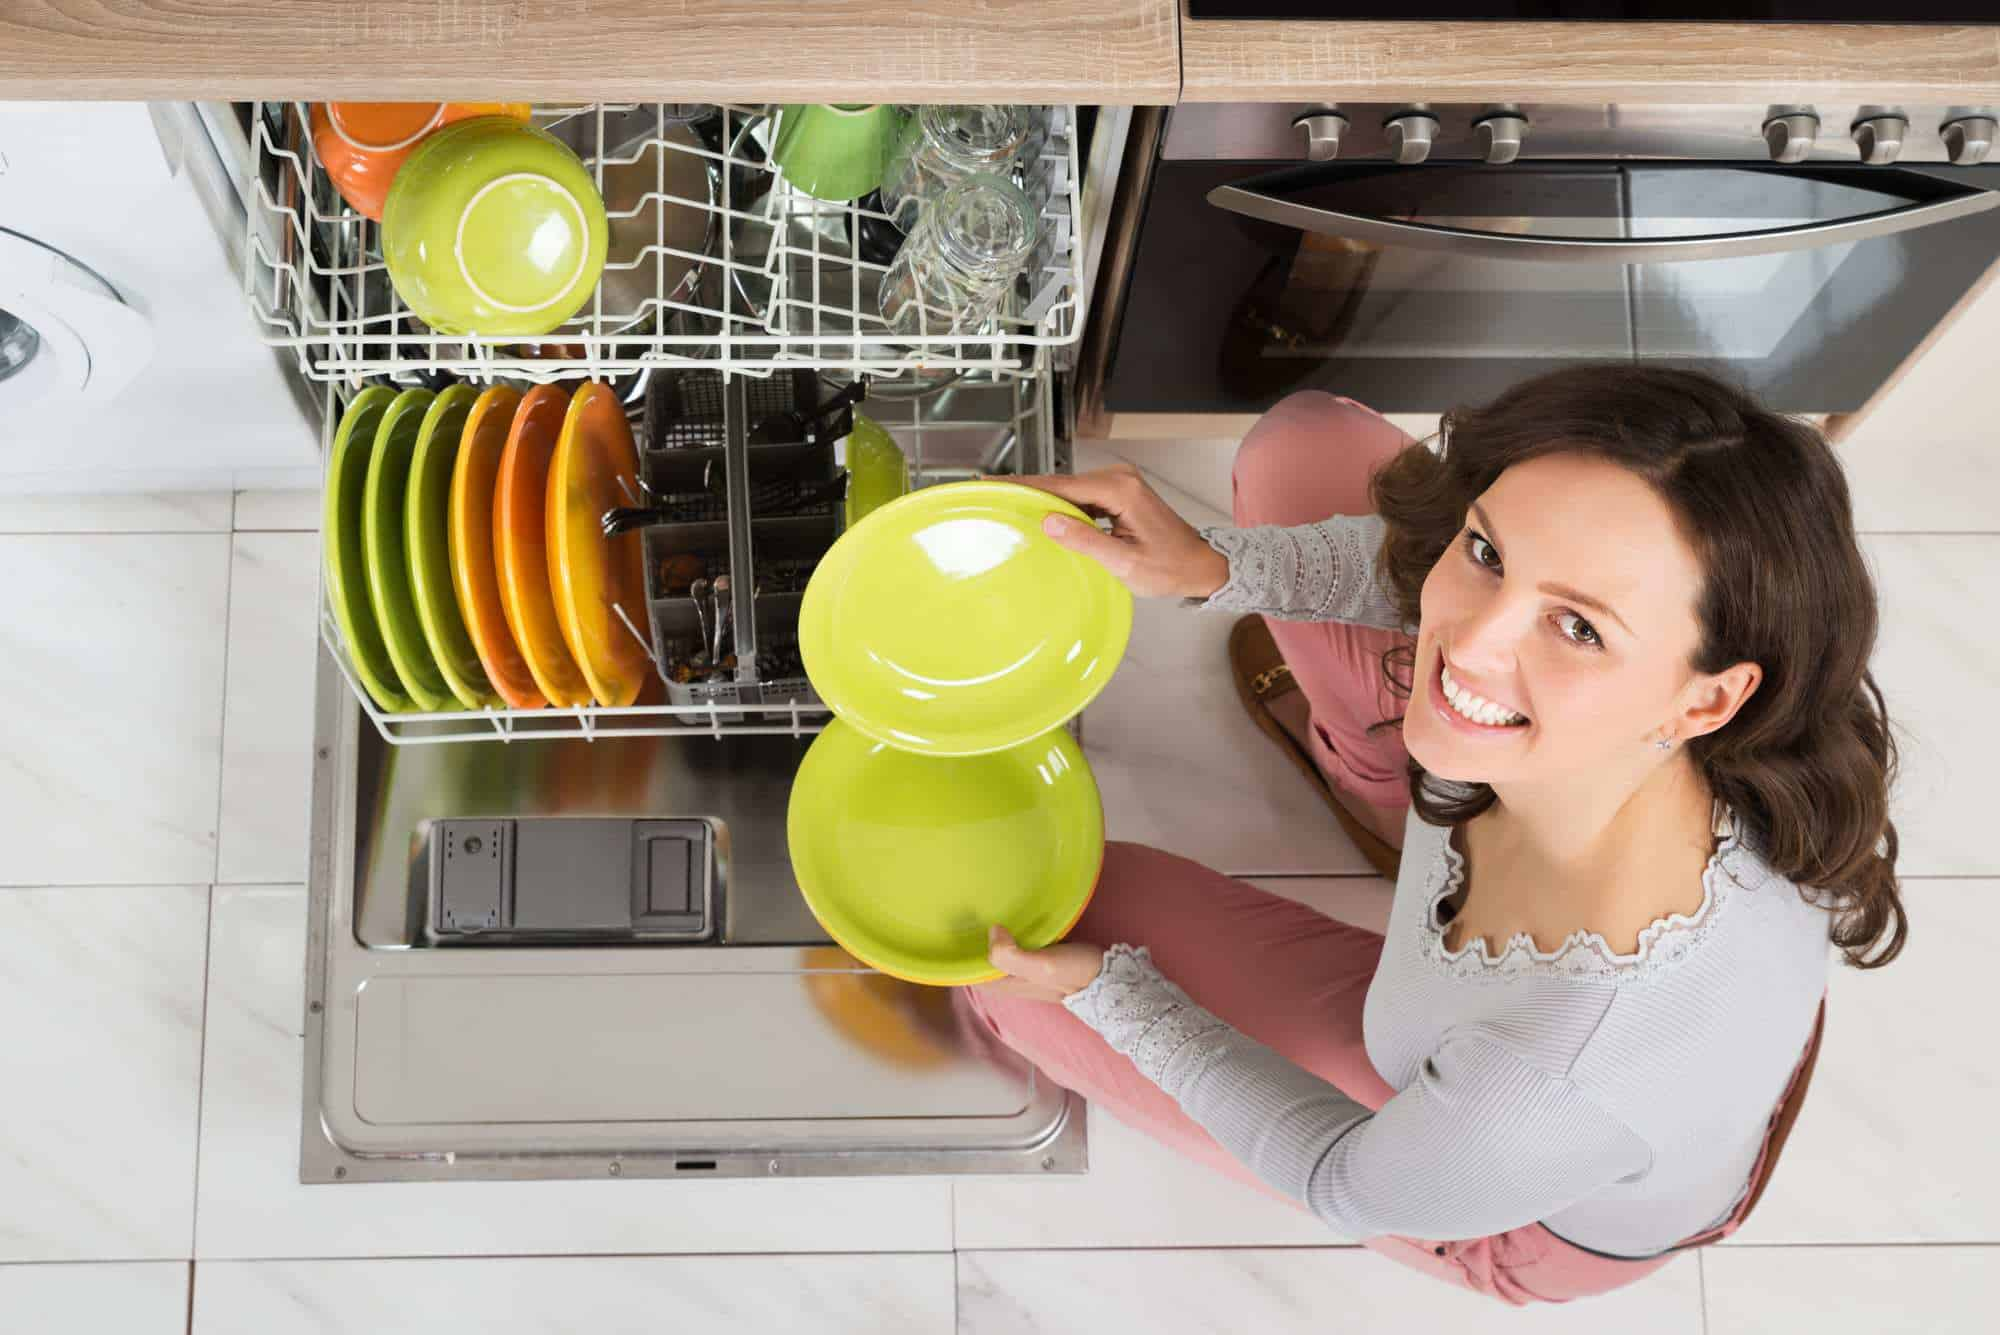 Mindset Shift: If You're Doing Housework, You're Exercising